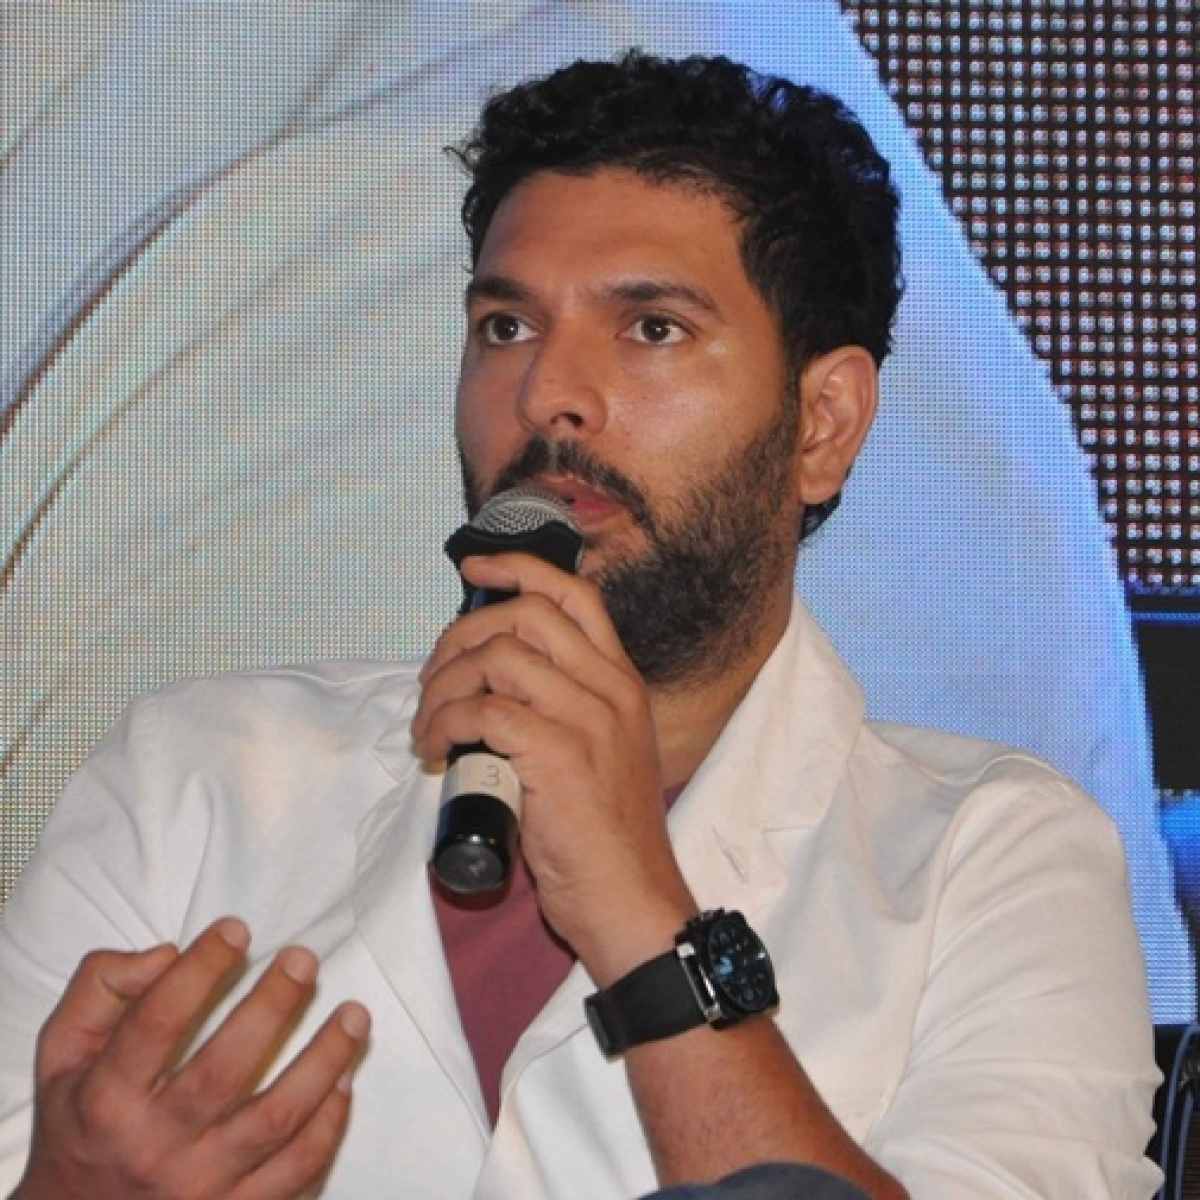 Yuvraj Singh releases statement after being panned over 'casteist remark' for Yuzvendra Chahal